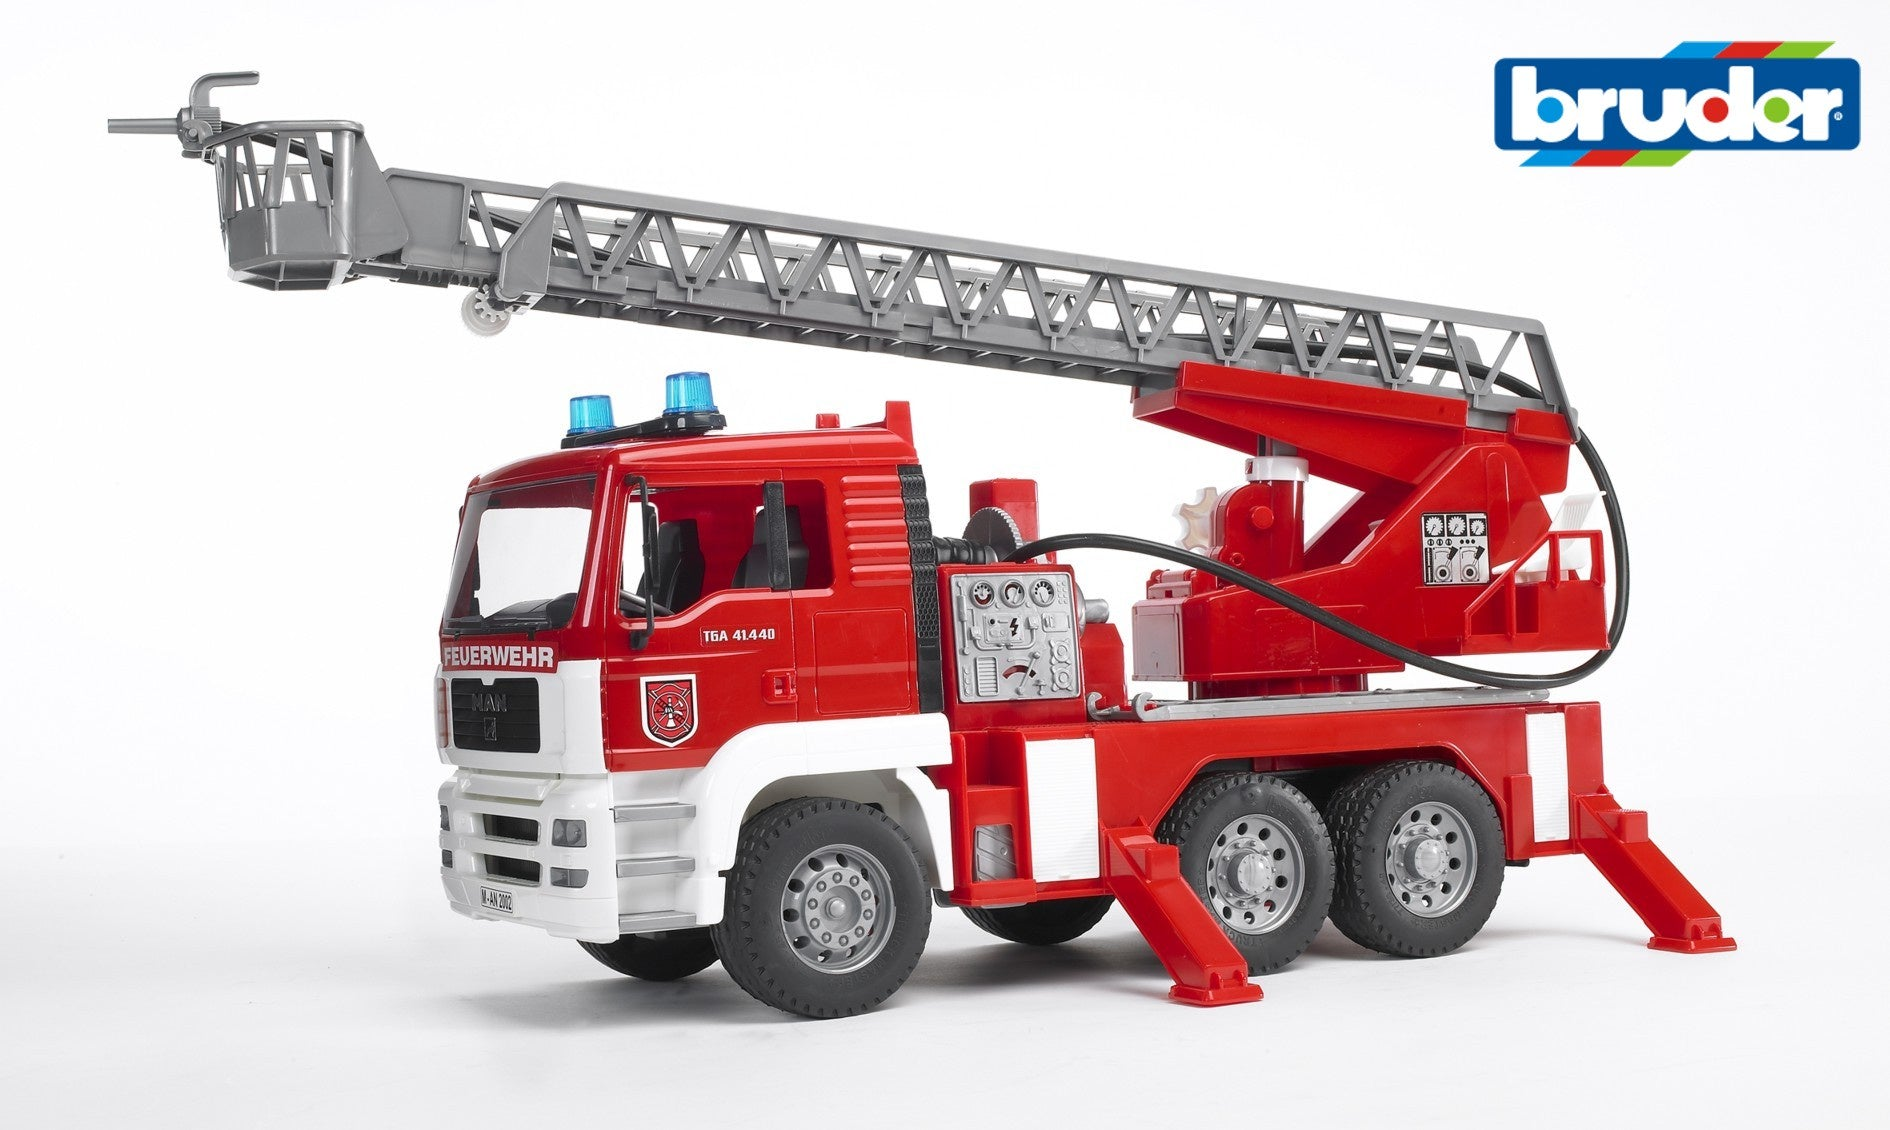 Bruder Fire Engine with Water Pump